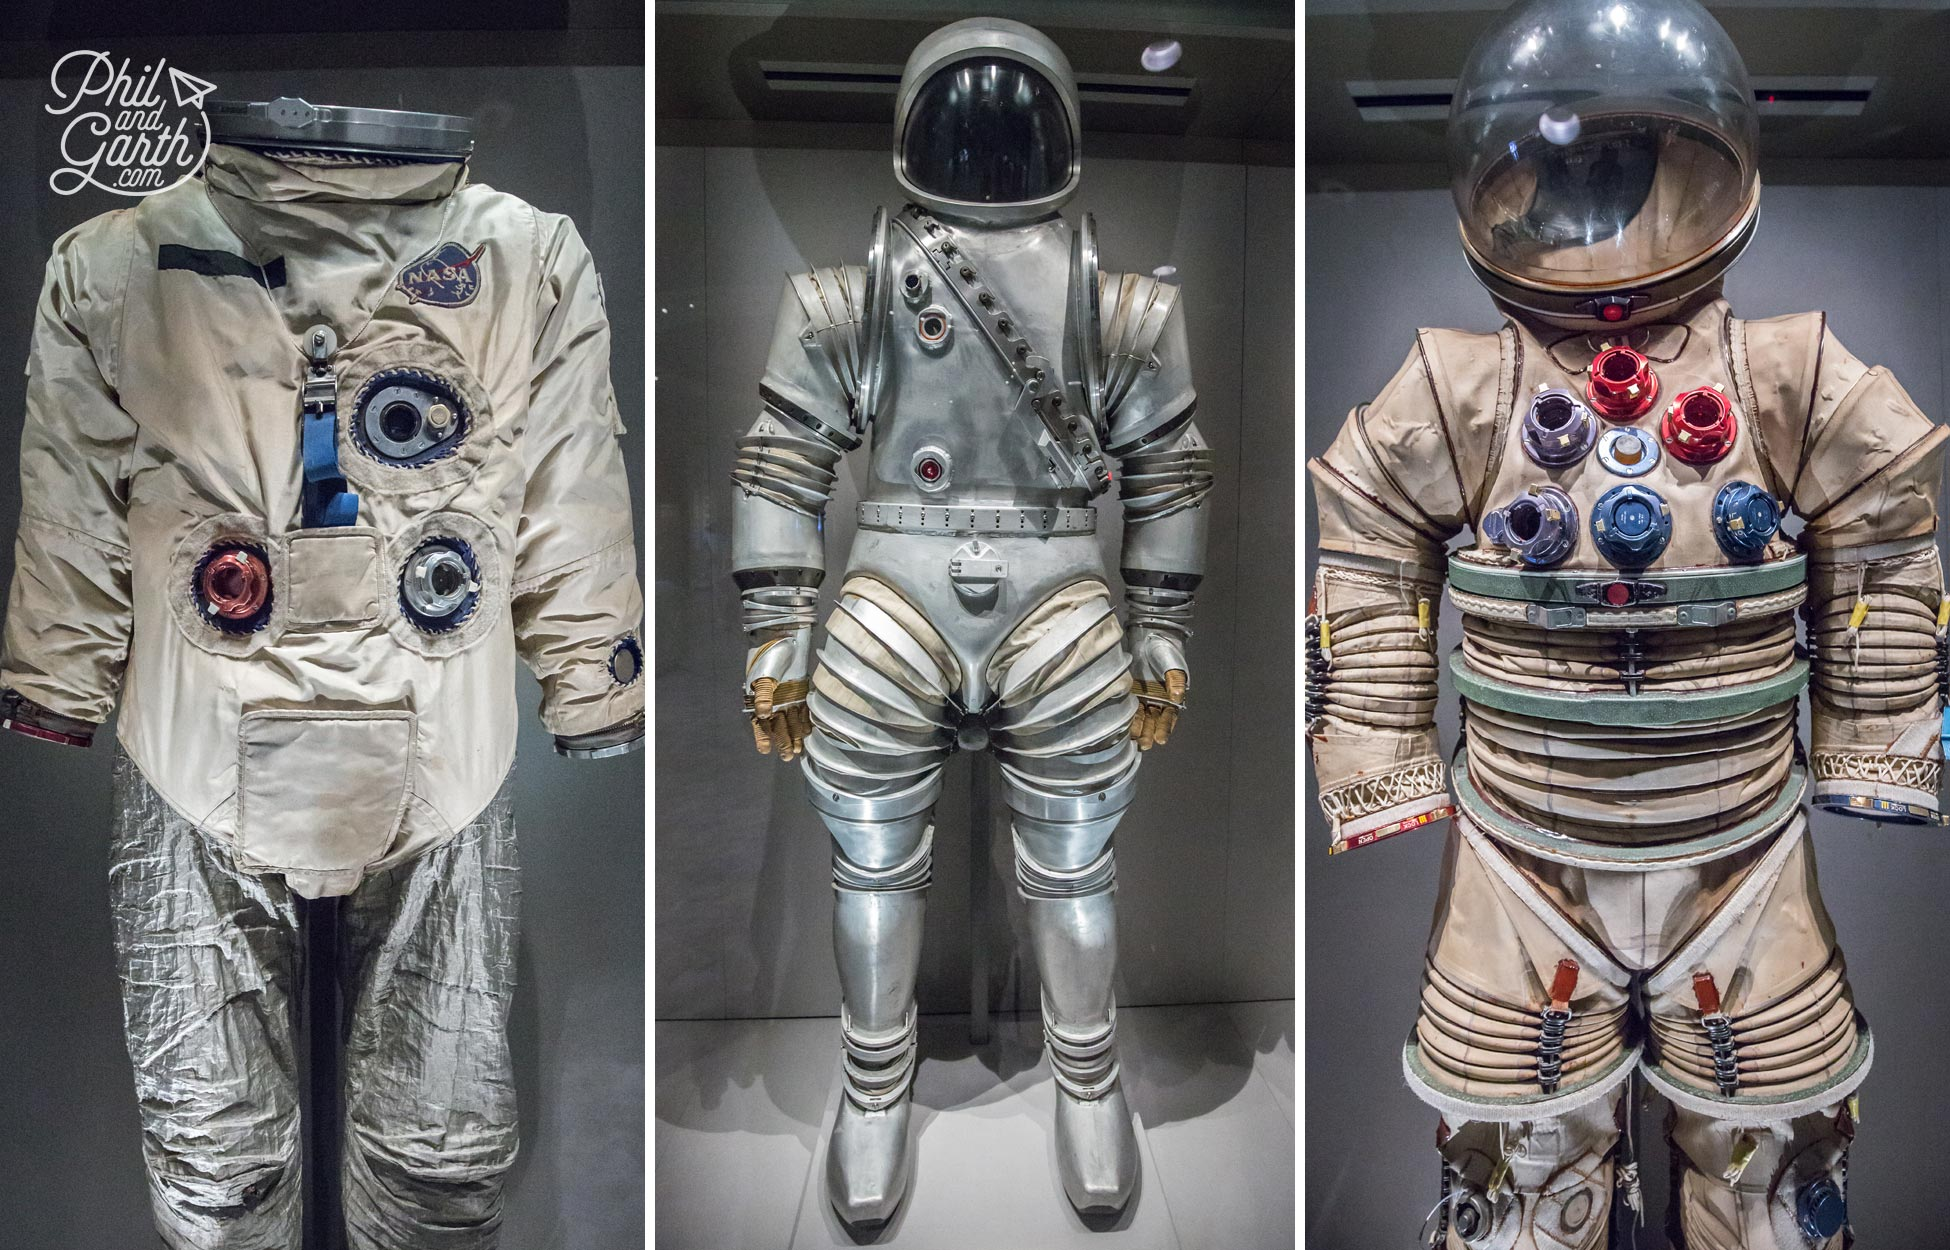 Actual spacesuits worn by astronauts on display in the Treasures Gallery